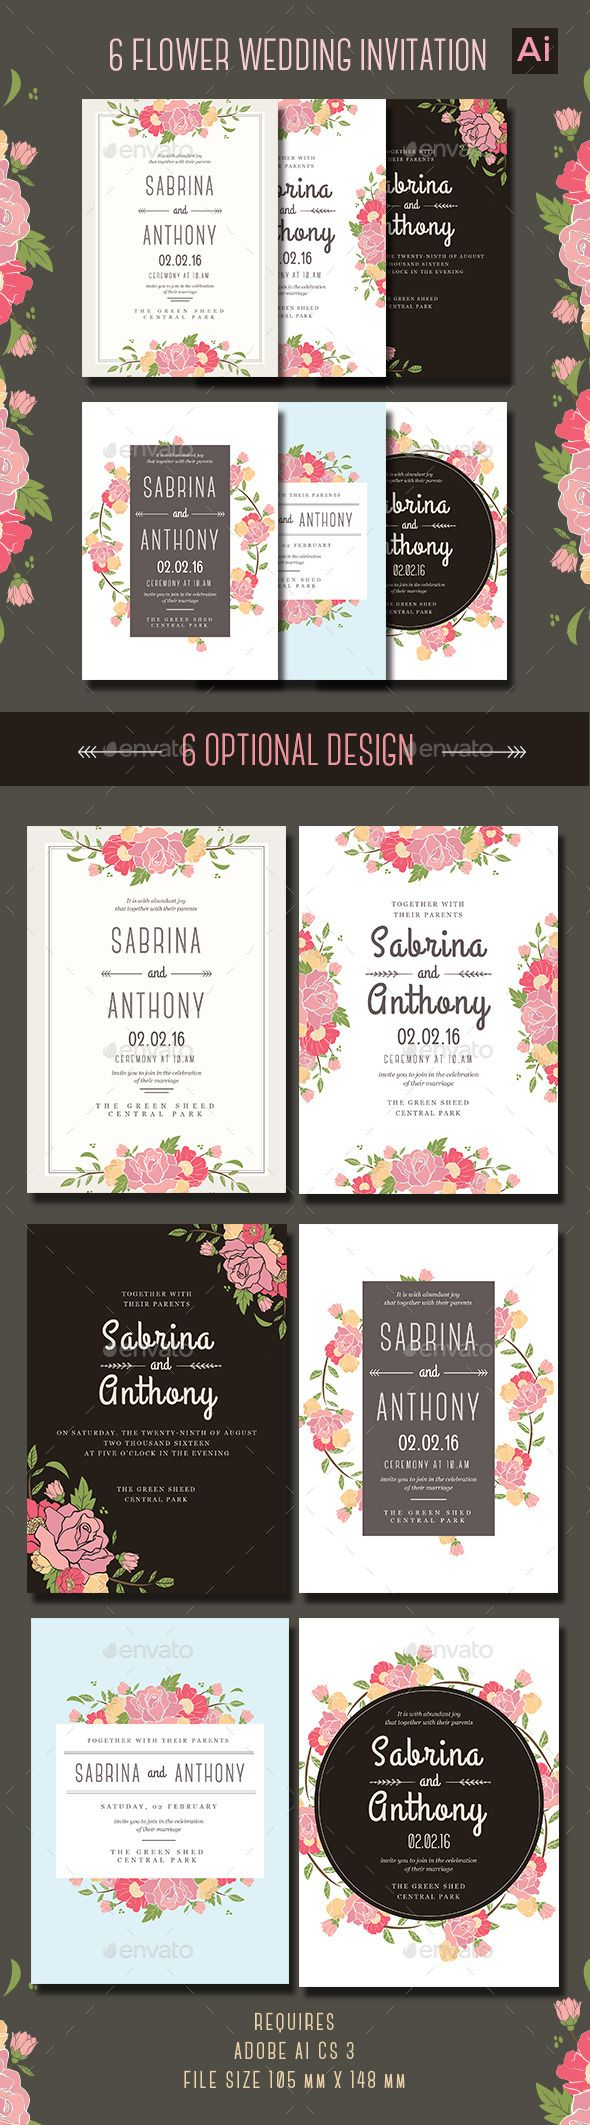 6 Floral Wedding Invitation Template AI #design Download: http://graphicriver.net/item/6-floral-wedding-invitation/13090147?ref=ksioks